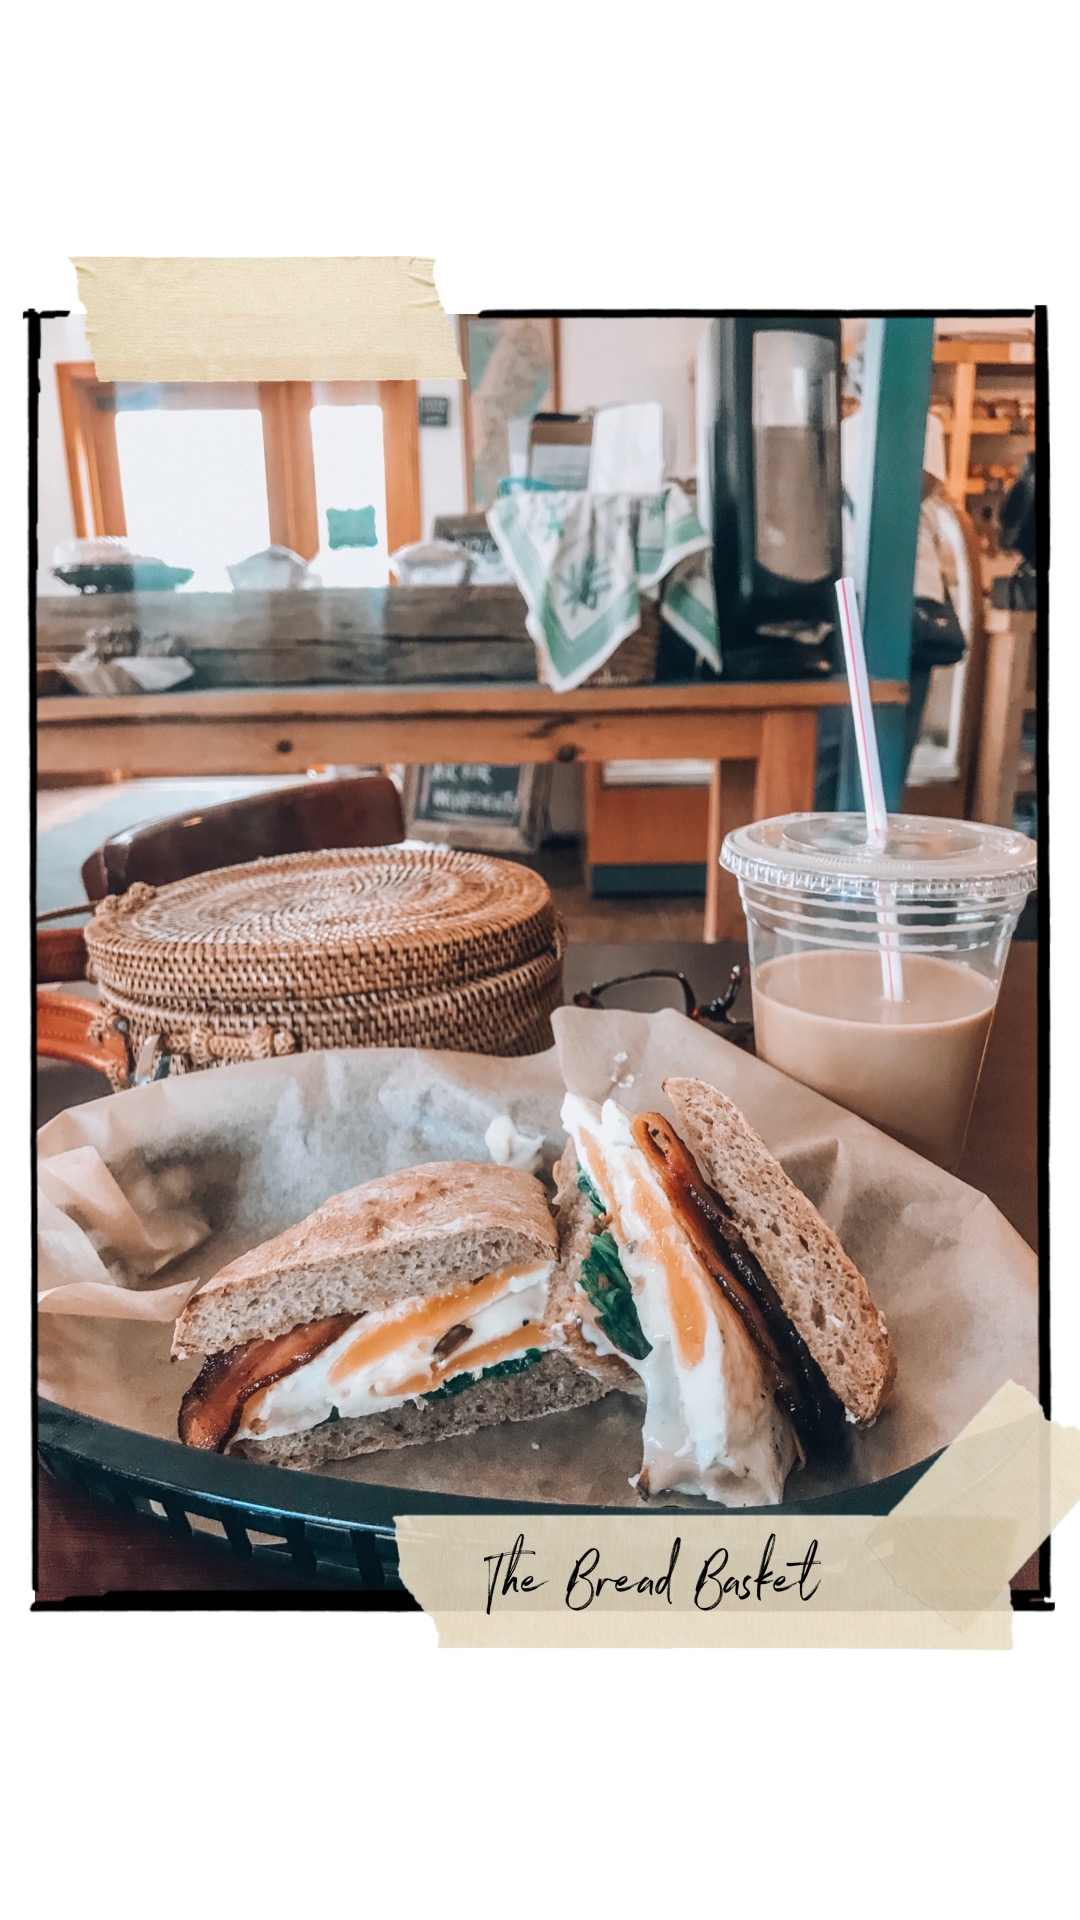 The Bread Basket - The Bread Basket is easily one of my favorite places. My cousin Mary is the head chef & everything is farm fresh & sooo darn tasty! You have to try the bacon jam & chocolate hummus - you won't regret it!